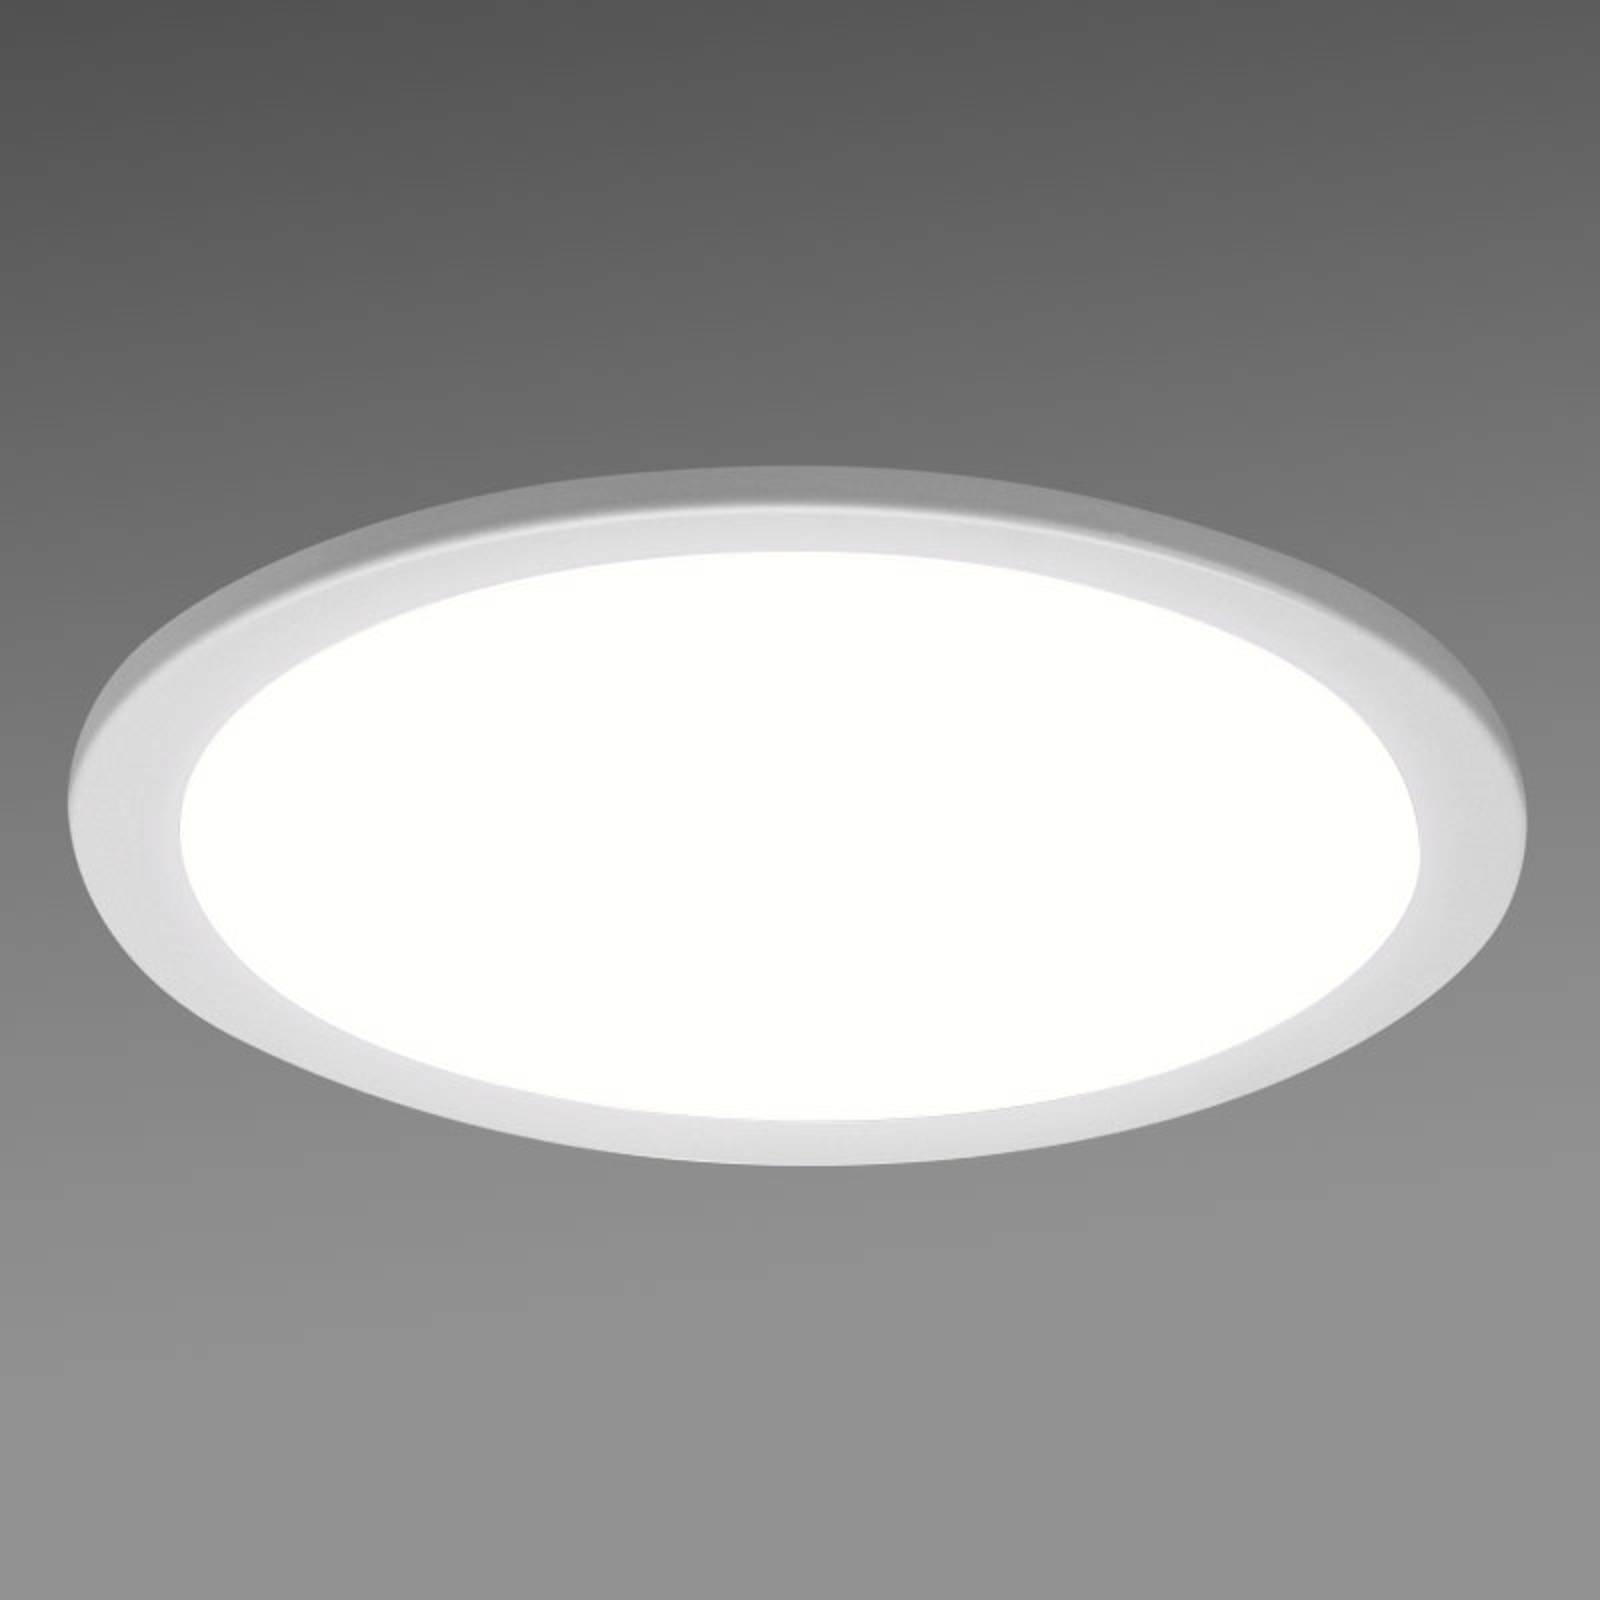 Round LED recessed downlight SBLG, 4,000 K from Lenneper